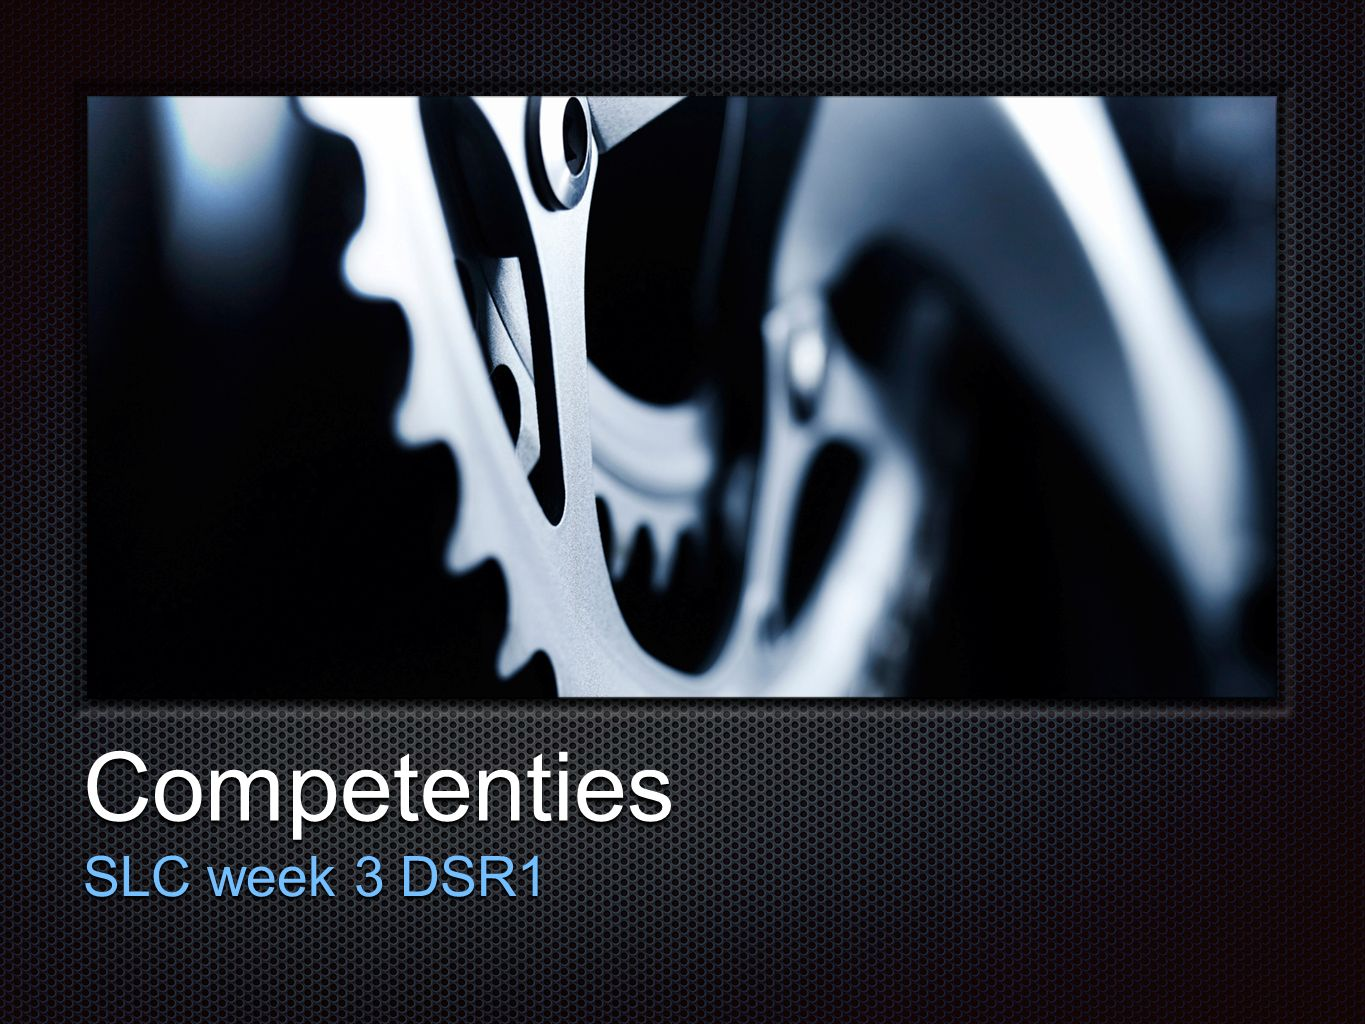 Competenties SLC week 3 DSR1